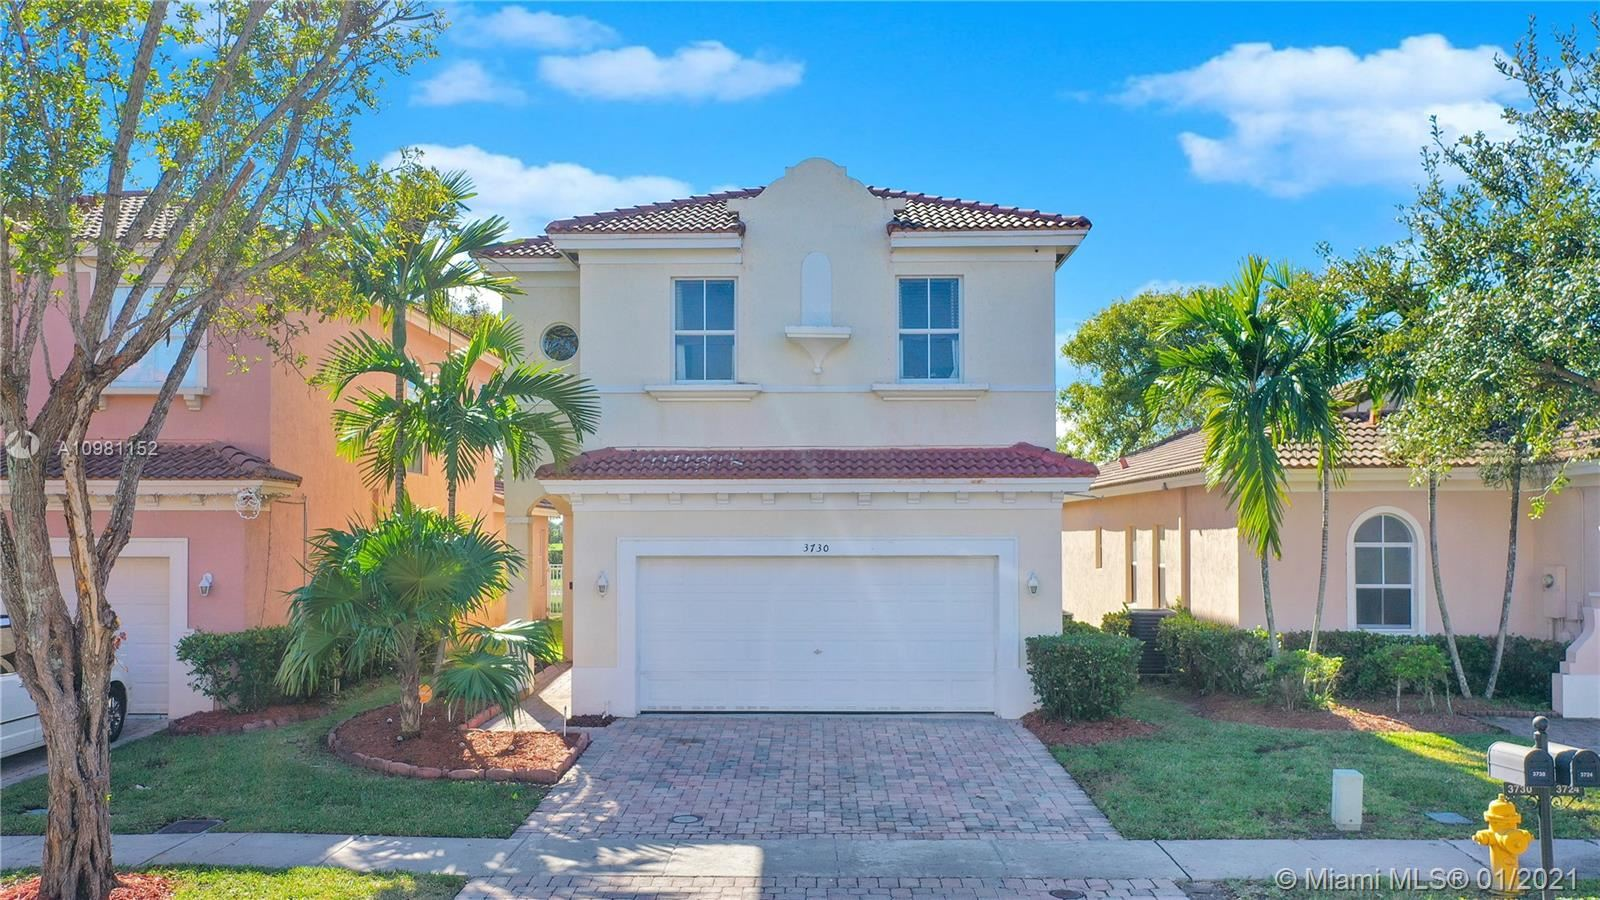 3730 NE 9th Ct, Homestead, FL 33033 - #: A10981152